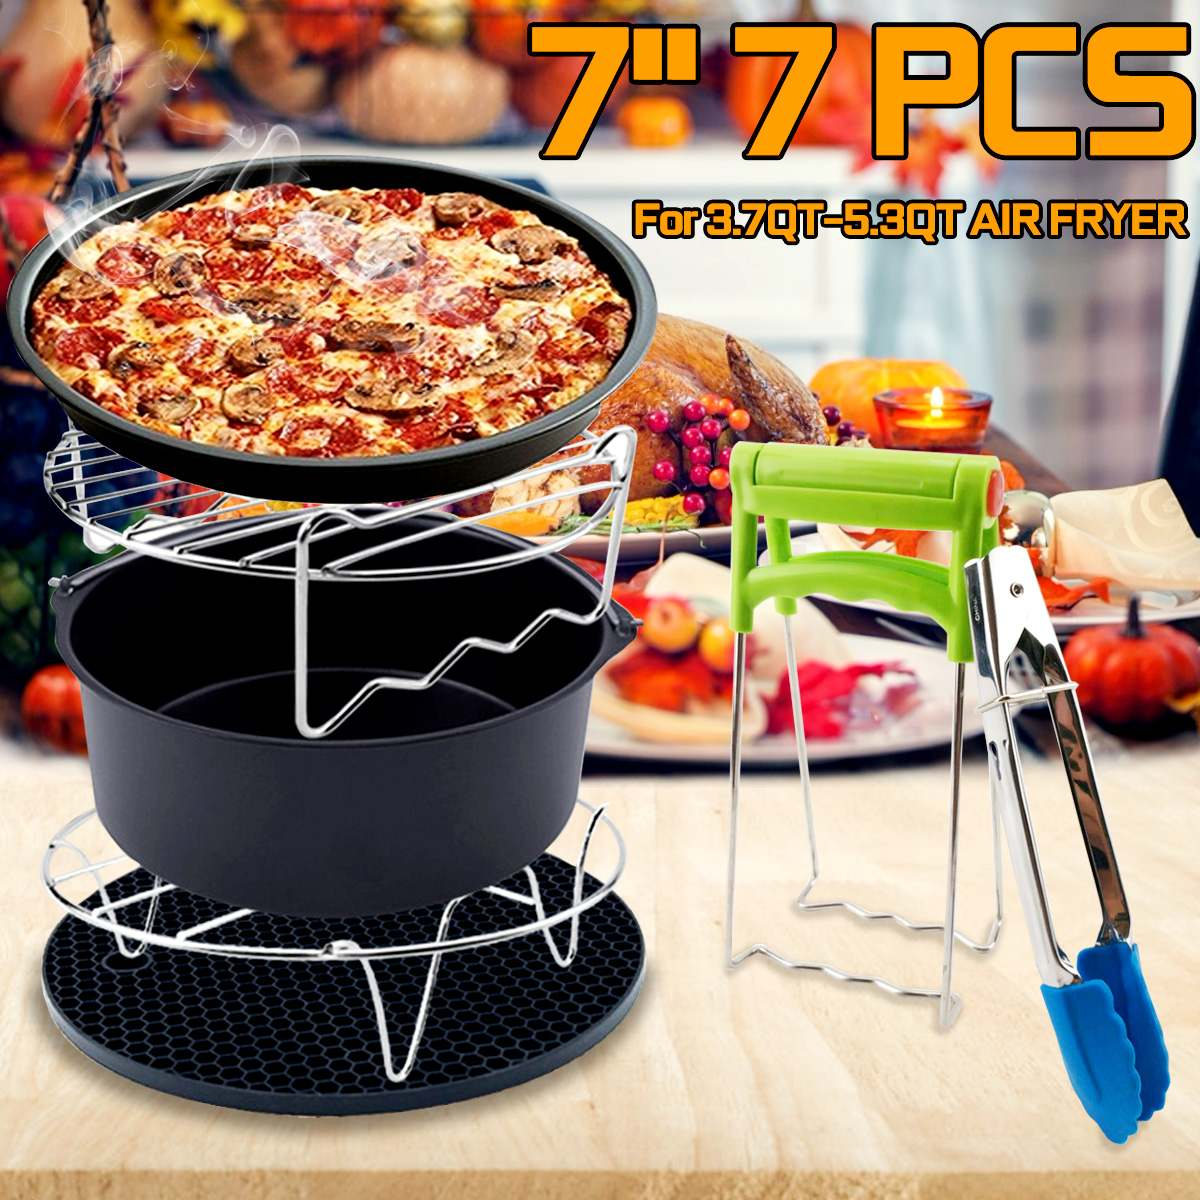 7PCS Air Fryer Accessories Cooking Fit All Airfryer For 3.7QT-5.3QT Food Dish Plate Food Clip Pizza Pan Cake Barrel Silicone Mat